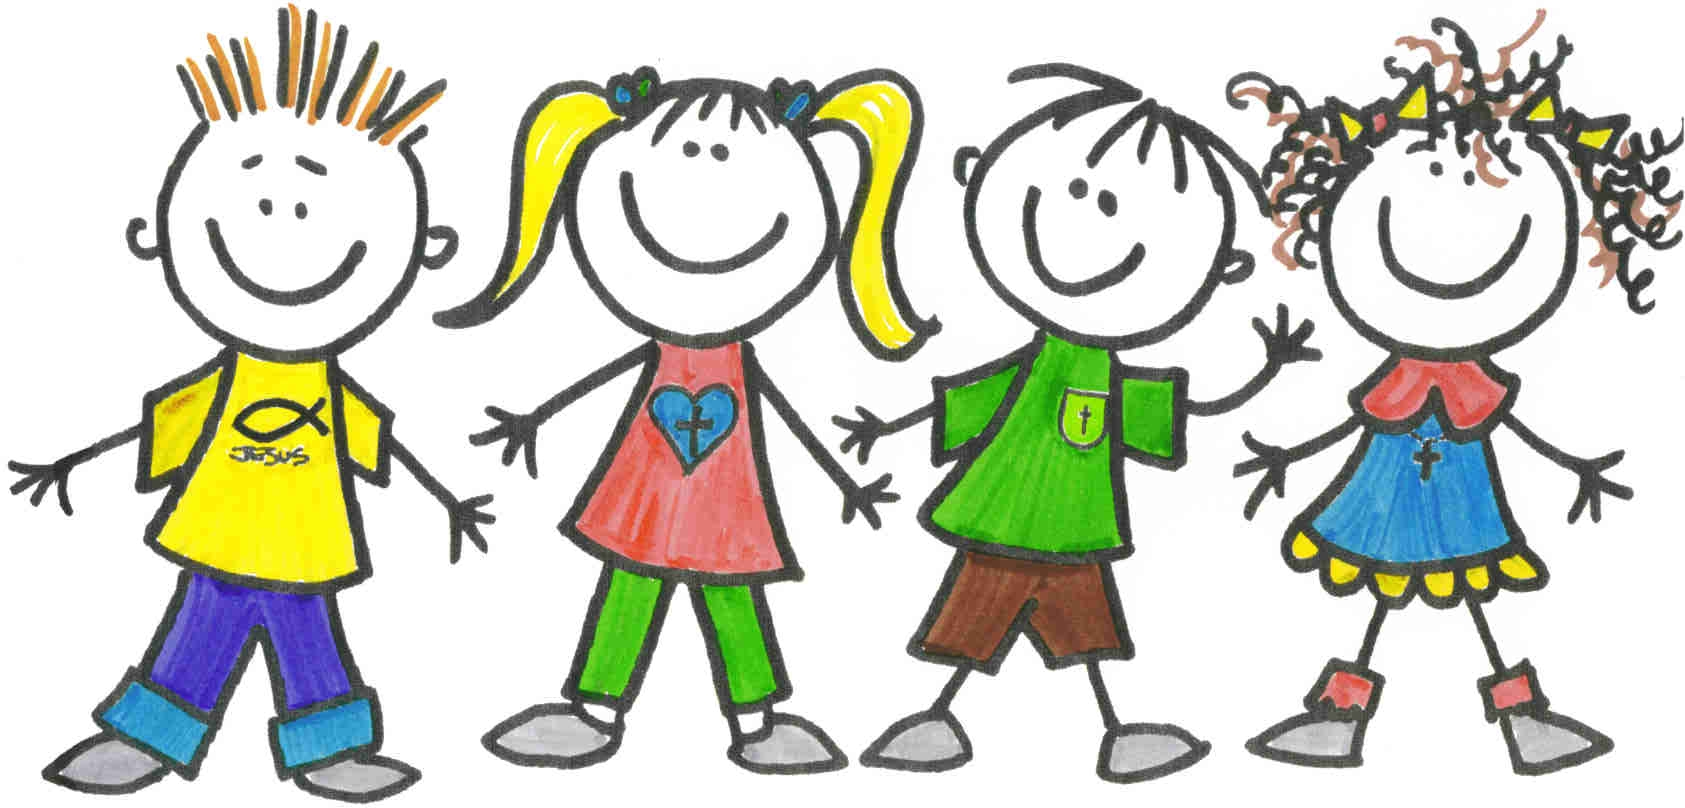 Playground clipart school fun Clipart school the Happy school